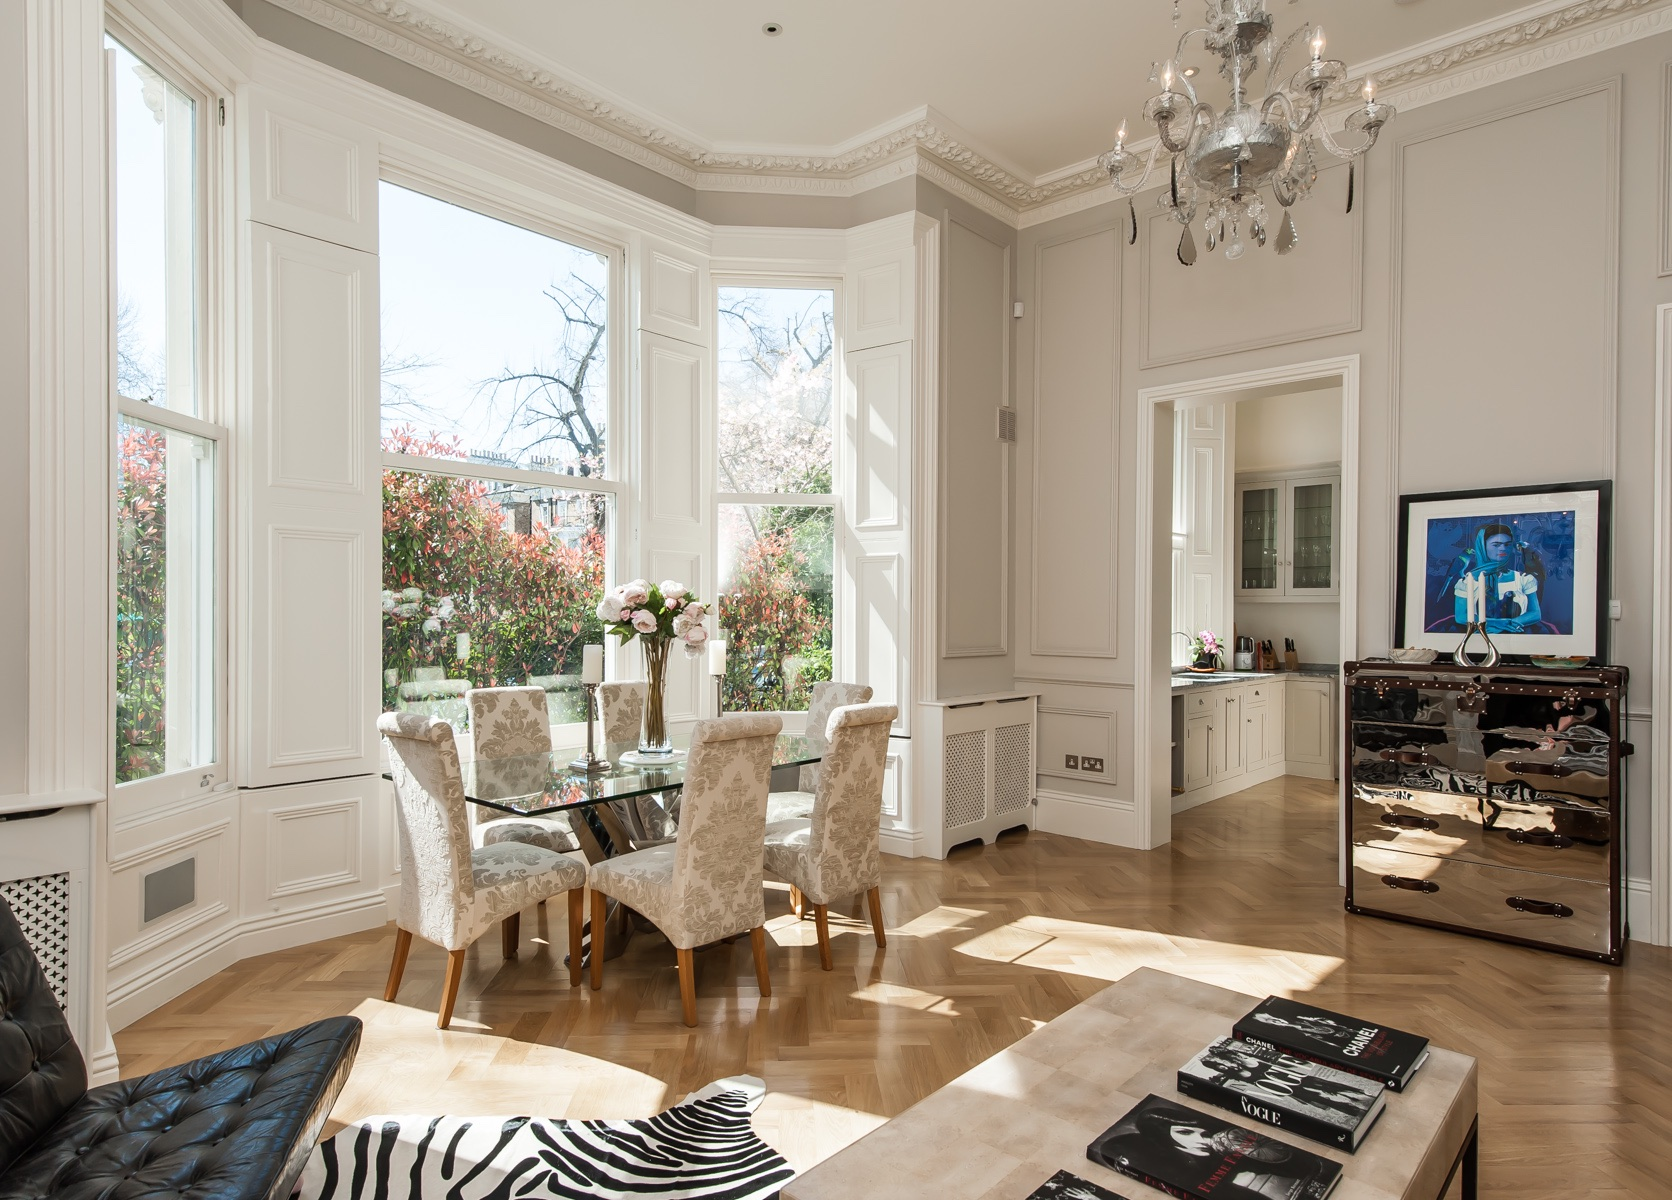 High ceiling dining living room with bay windows and wall panelling looking into the bespoke CK shaker grey kitchen